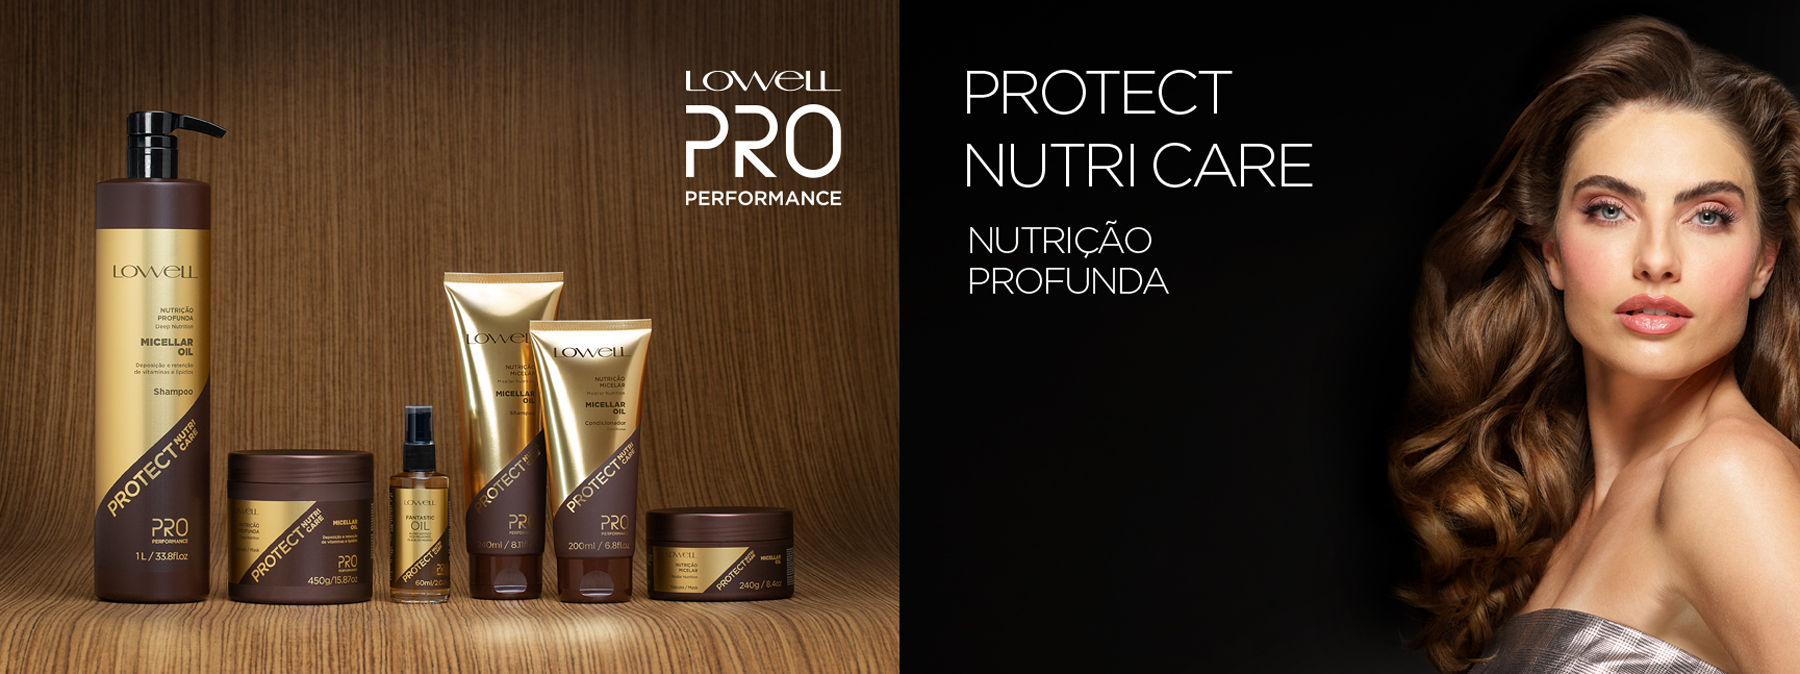 PROTECT NUTRI CARE